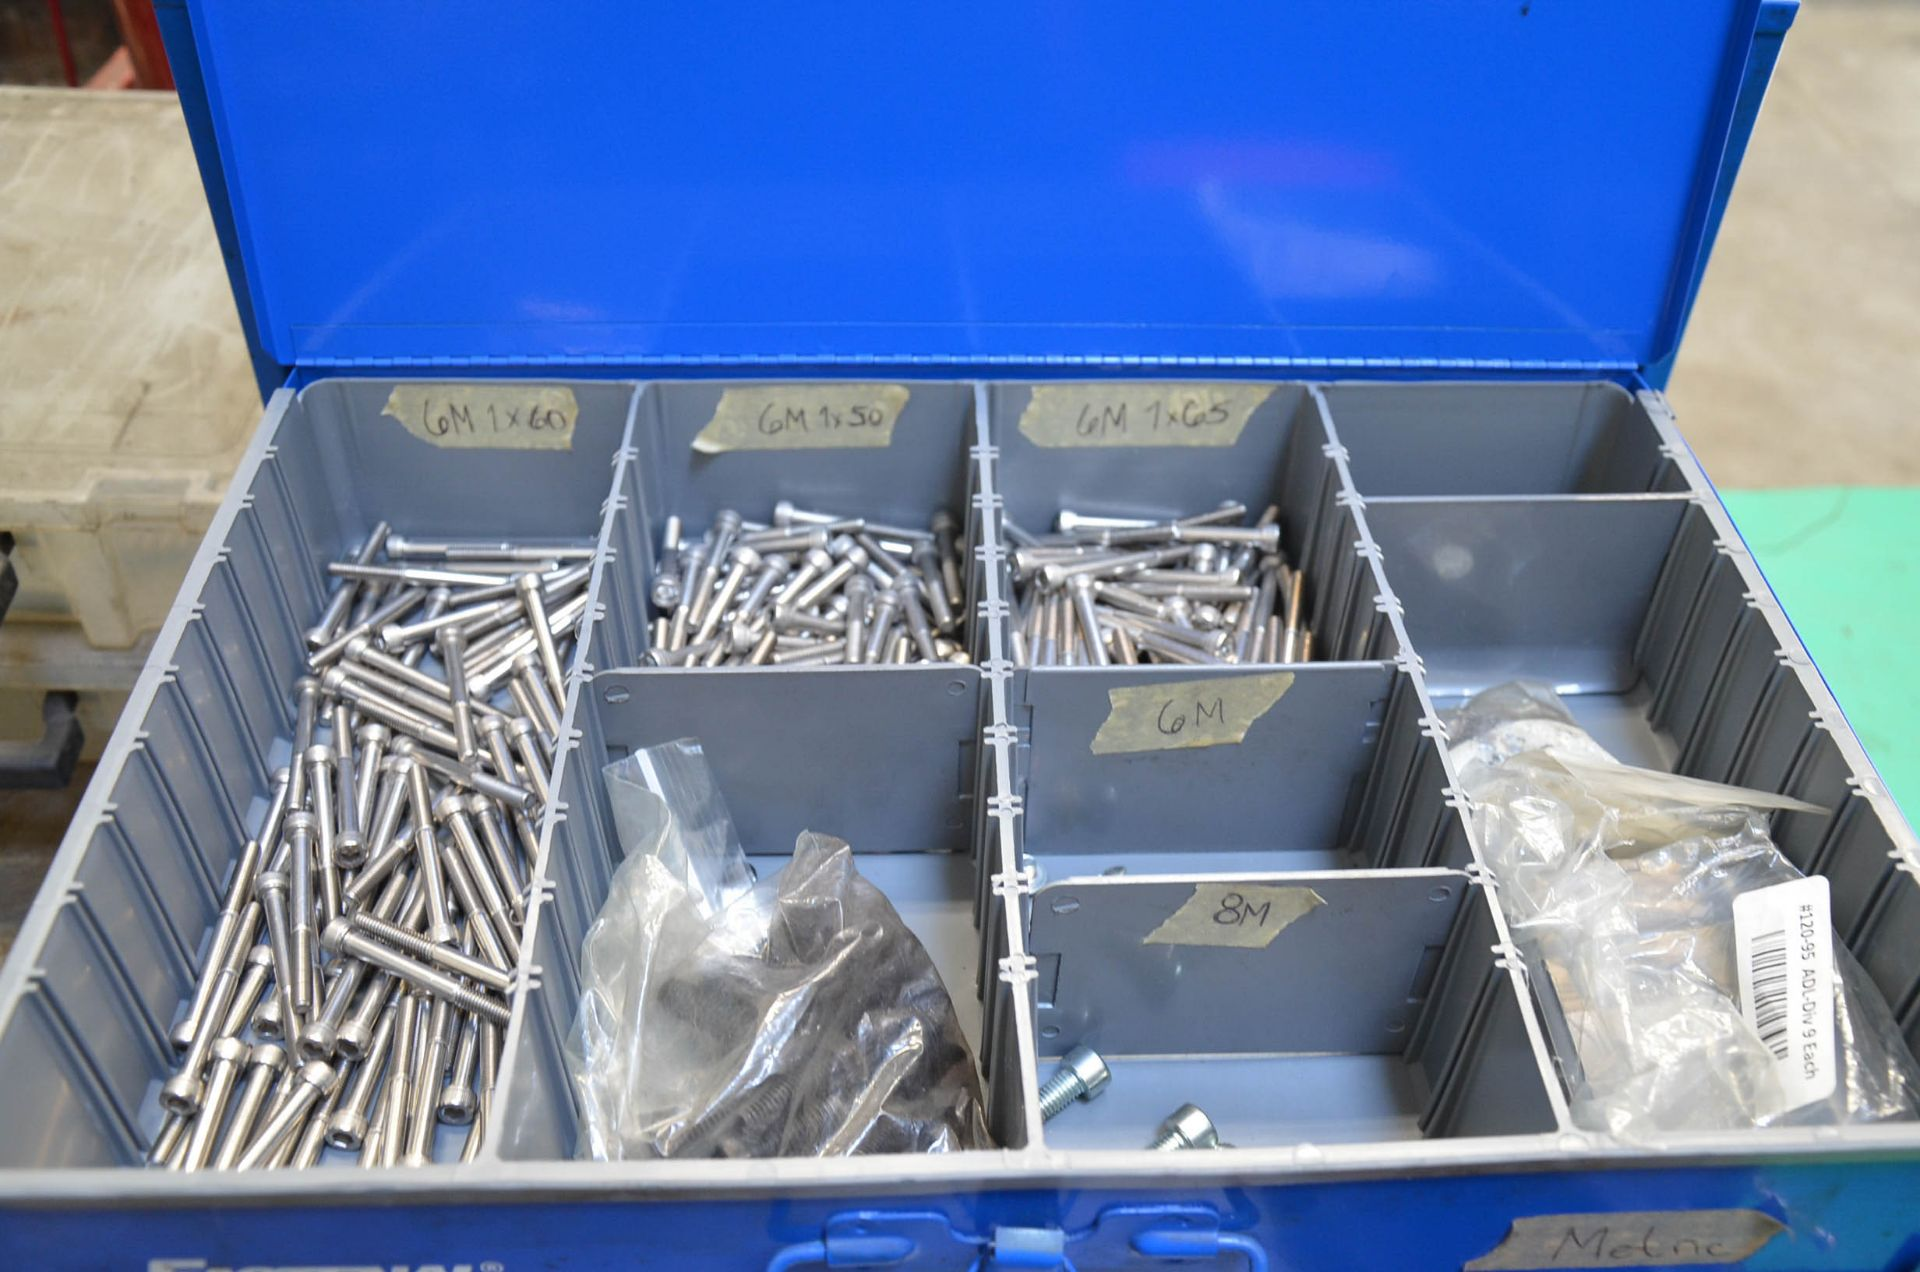 LOT/ FASTENAL INDEX CABINETS WITH HARDWARE - Image 2 of 3